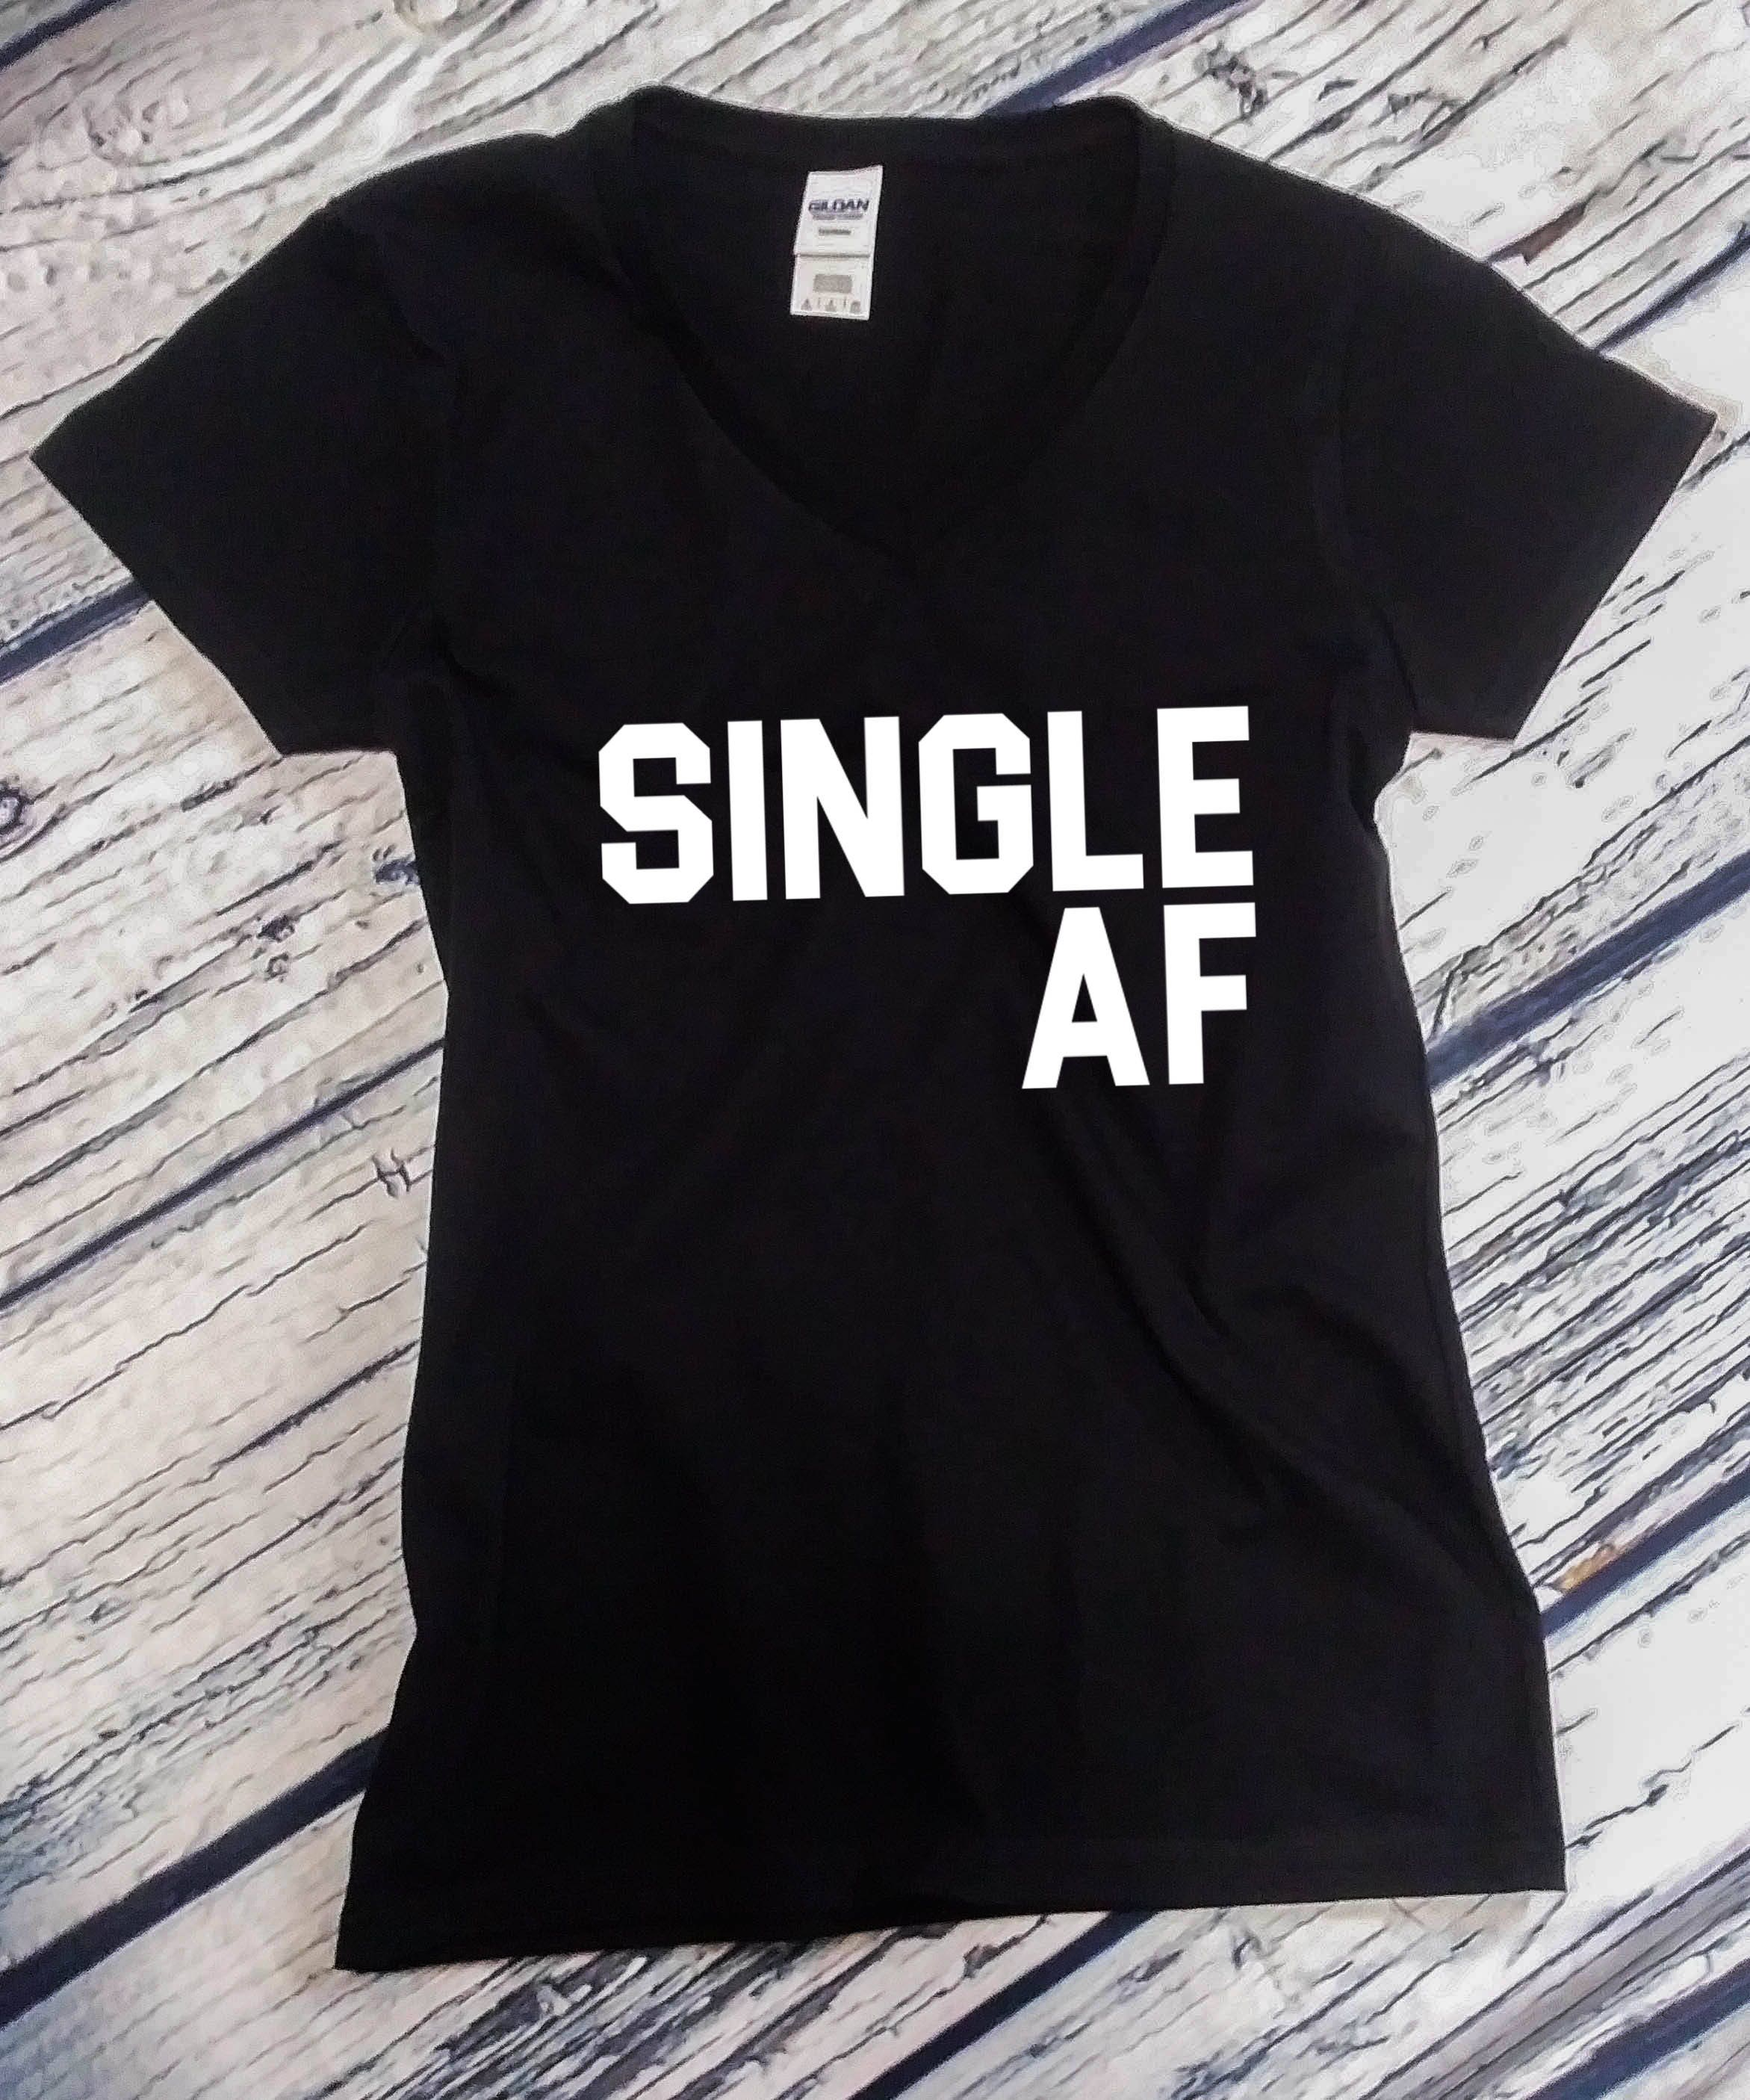 Ladies V Neck Single Af Shirt Funny Valentines T Shirt